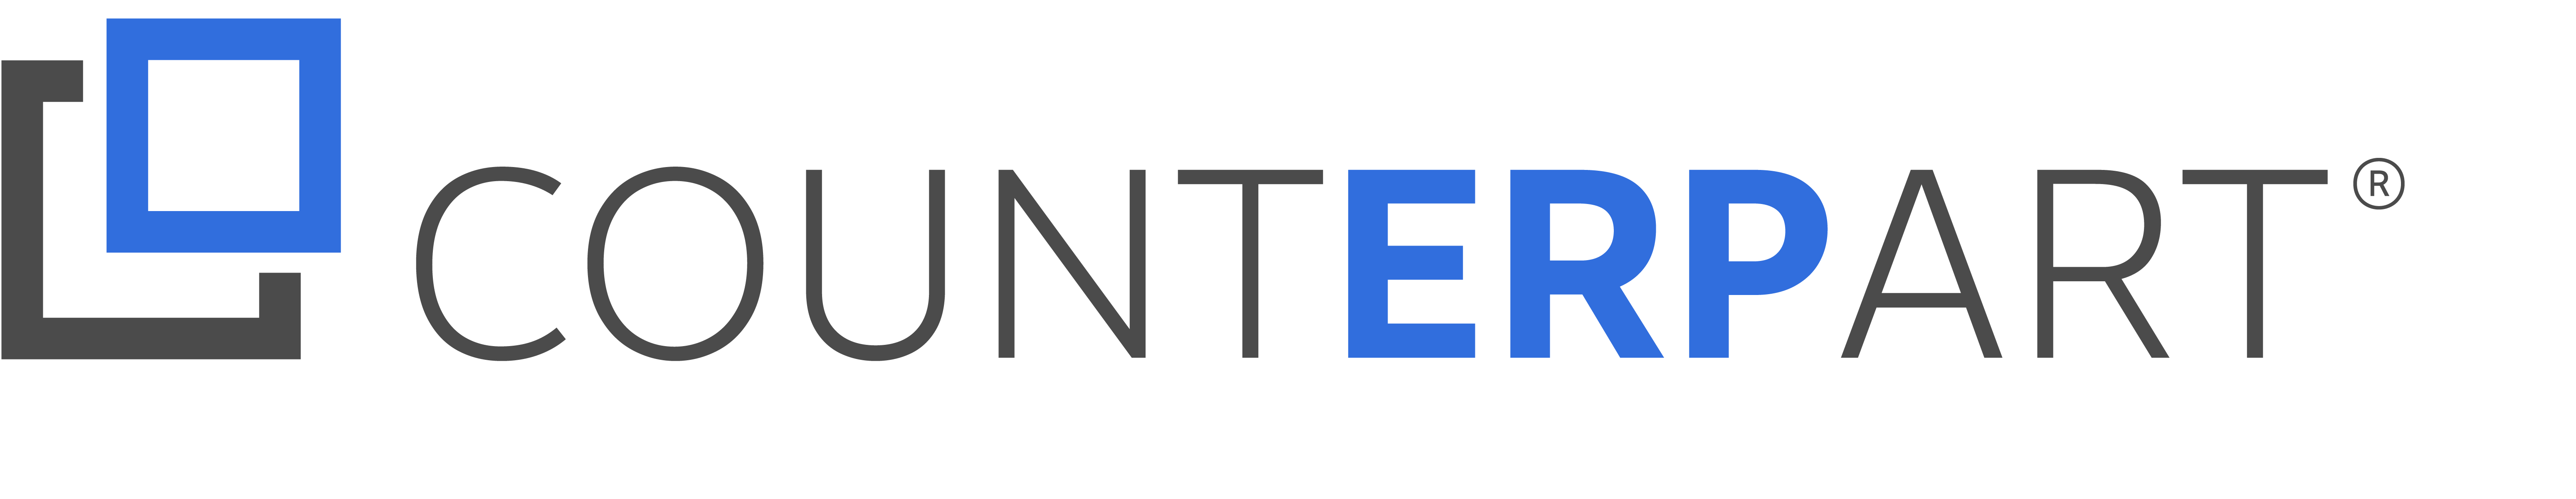 Andrew Schutte, General Manager of COUNTERPART ETO Talks Engineering Efficiency on Industrial Talk Podcast